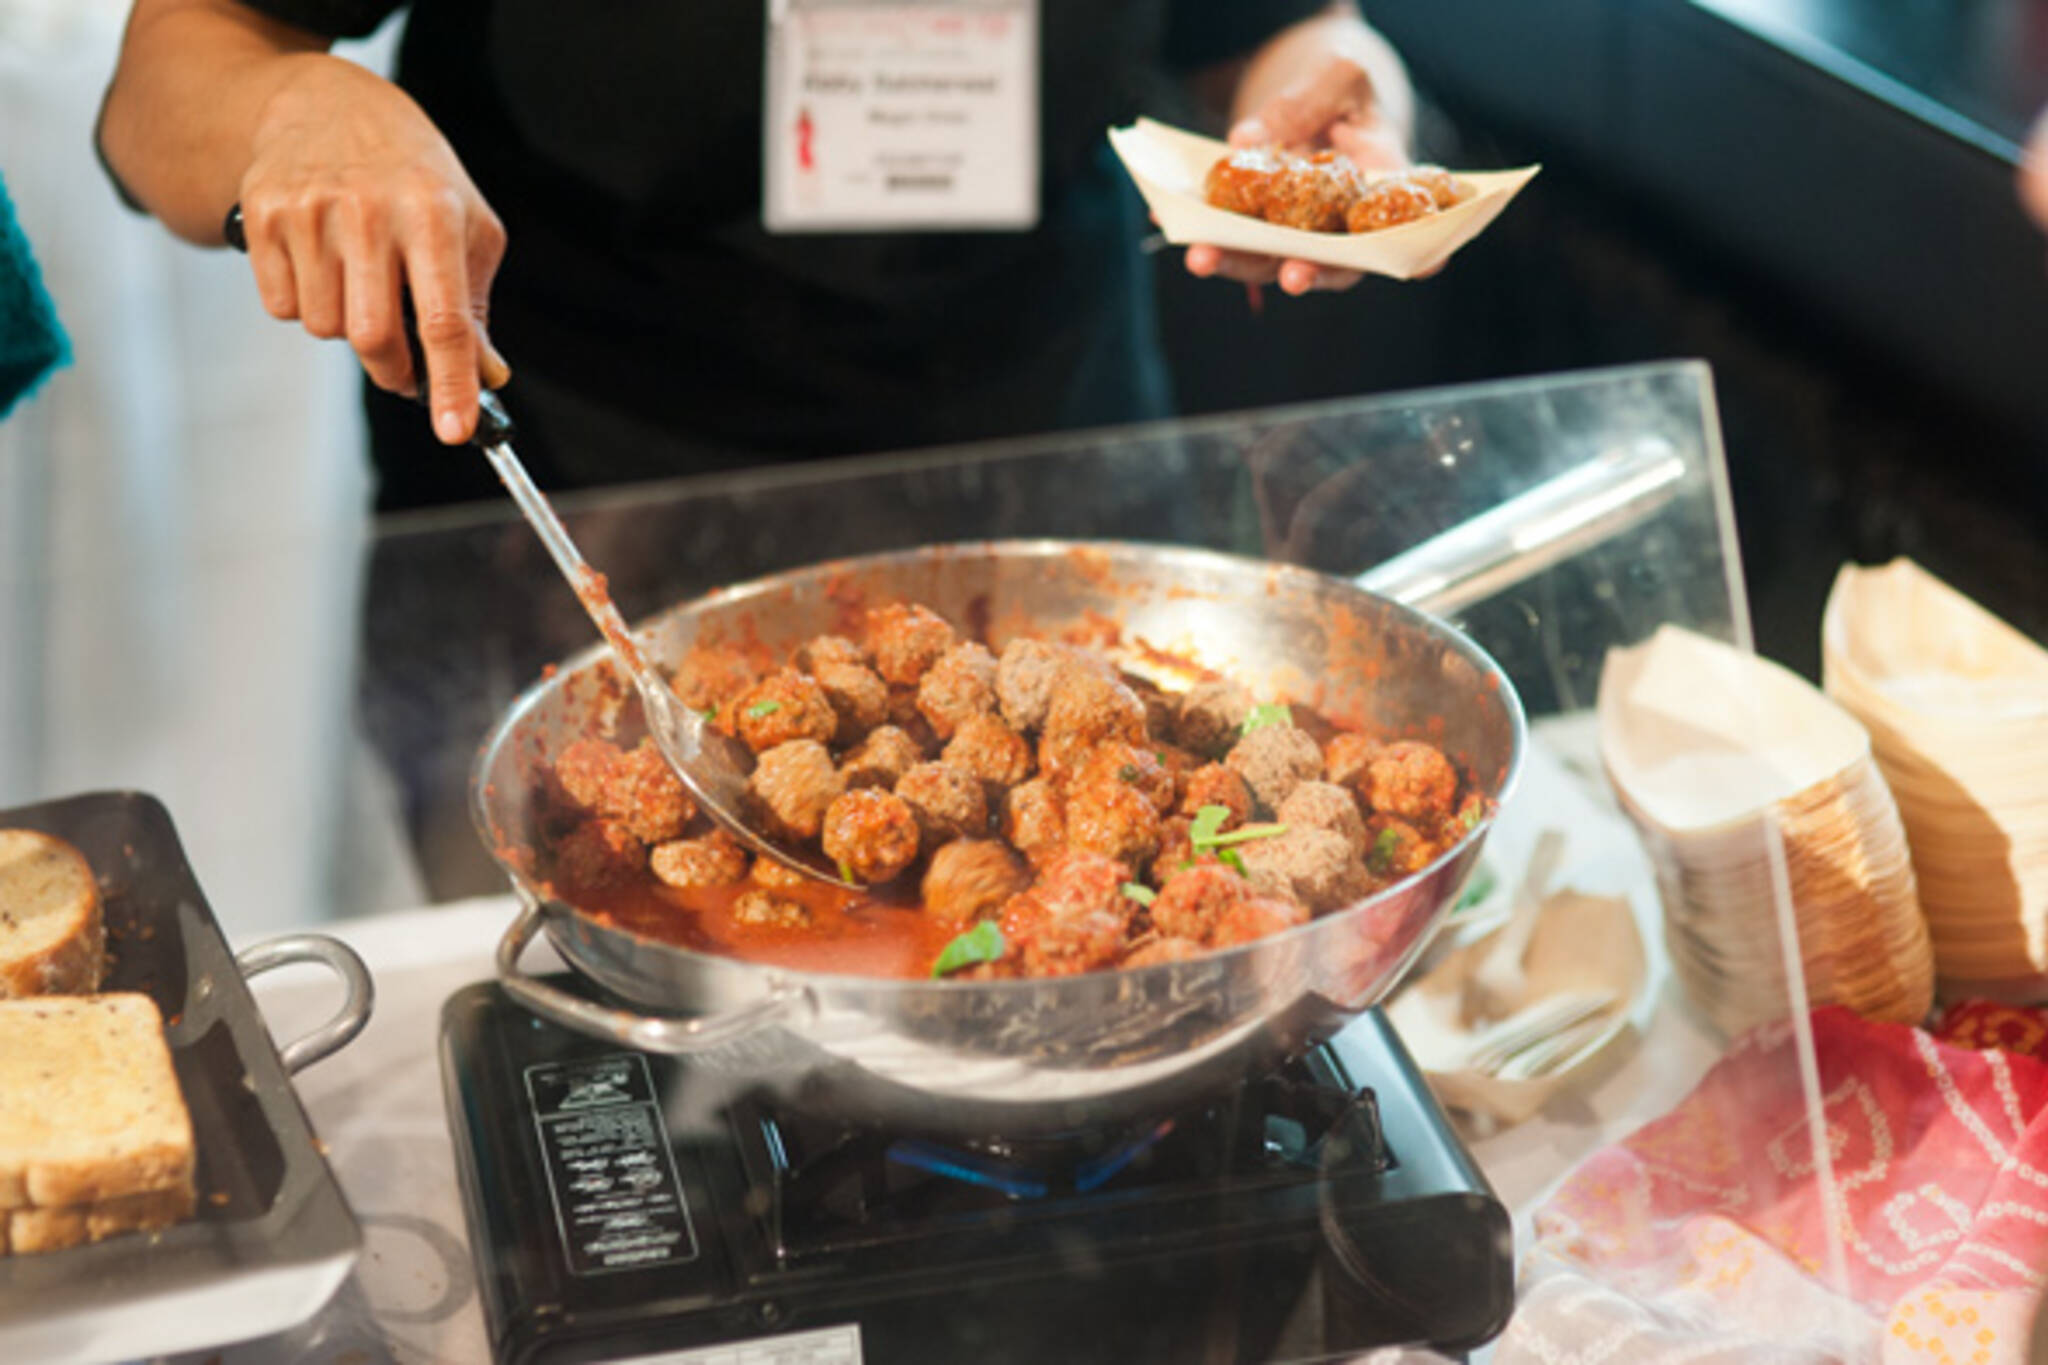 Gourmet food wine expo